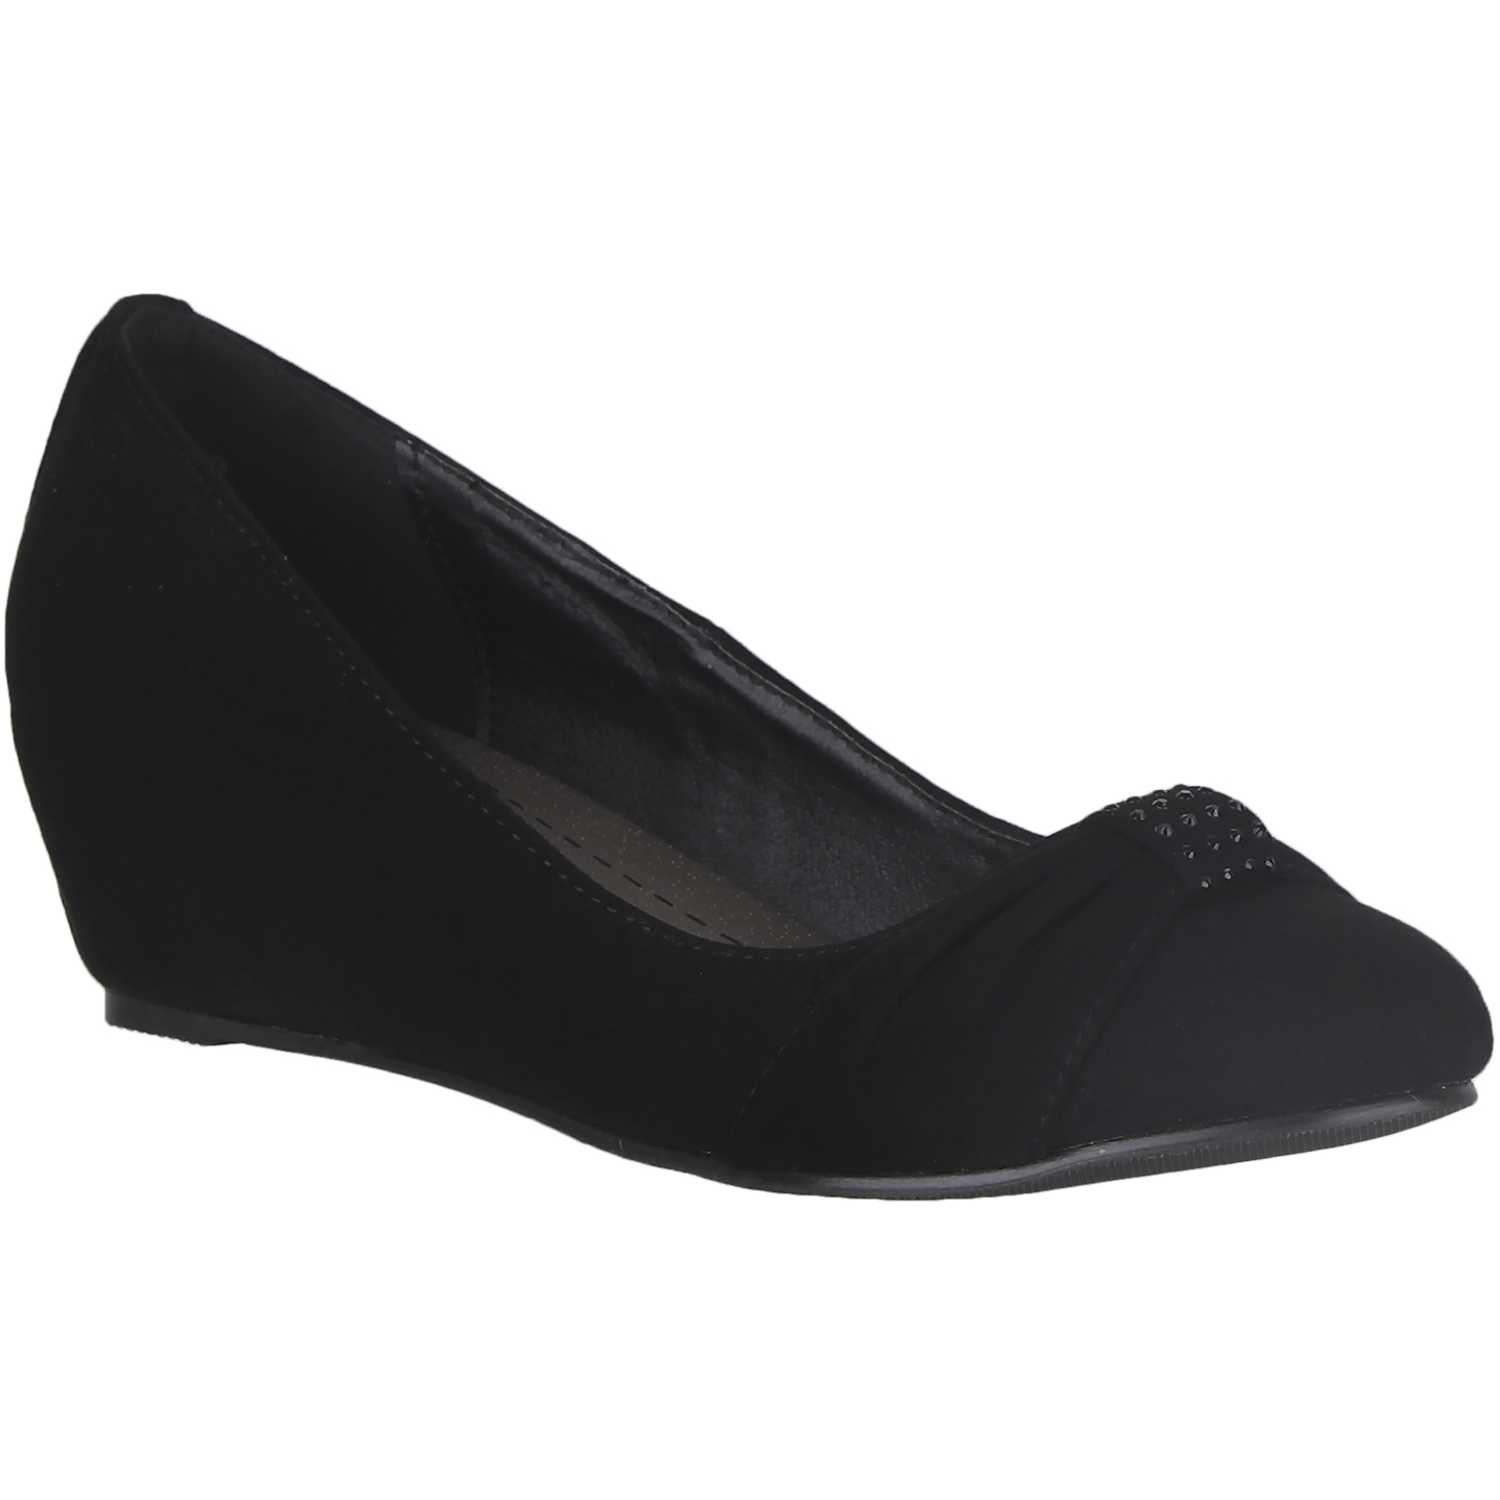 Platanitos cw-837 Negro Estiletos y Pumps